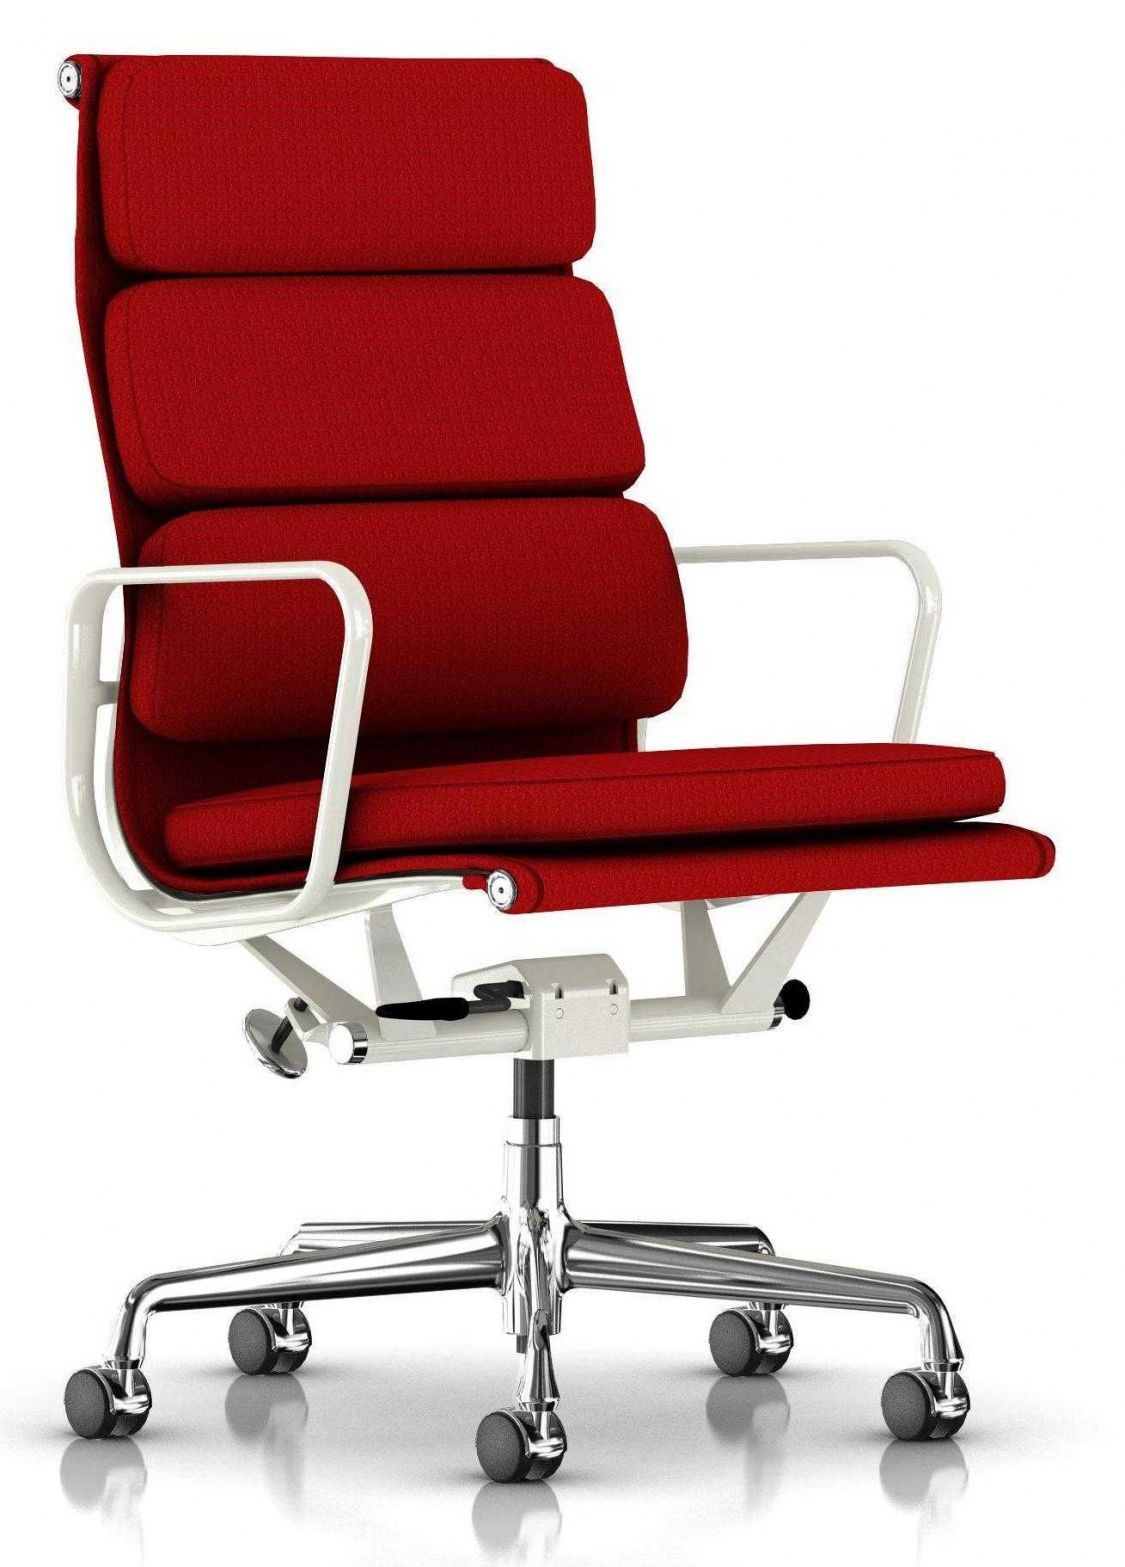 50 Cool Office Chairs Home Furniture Sets Check More At Http